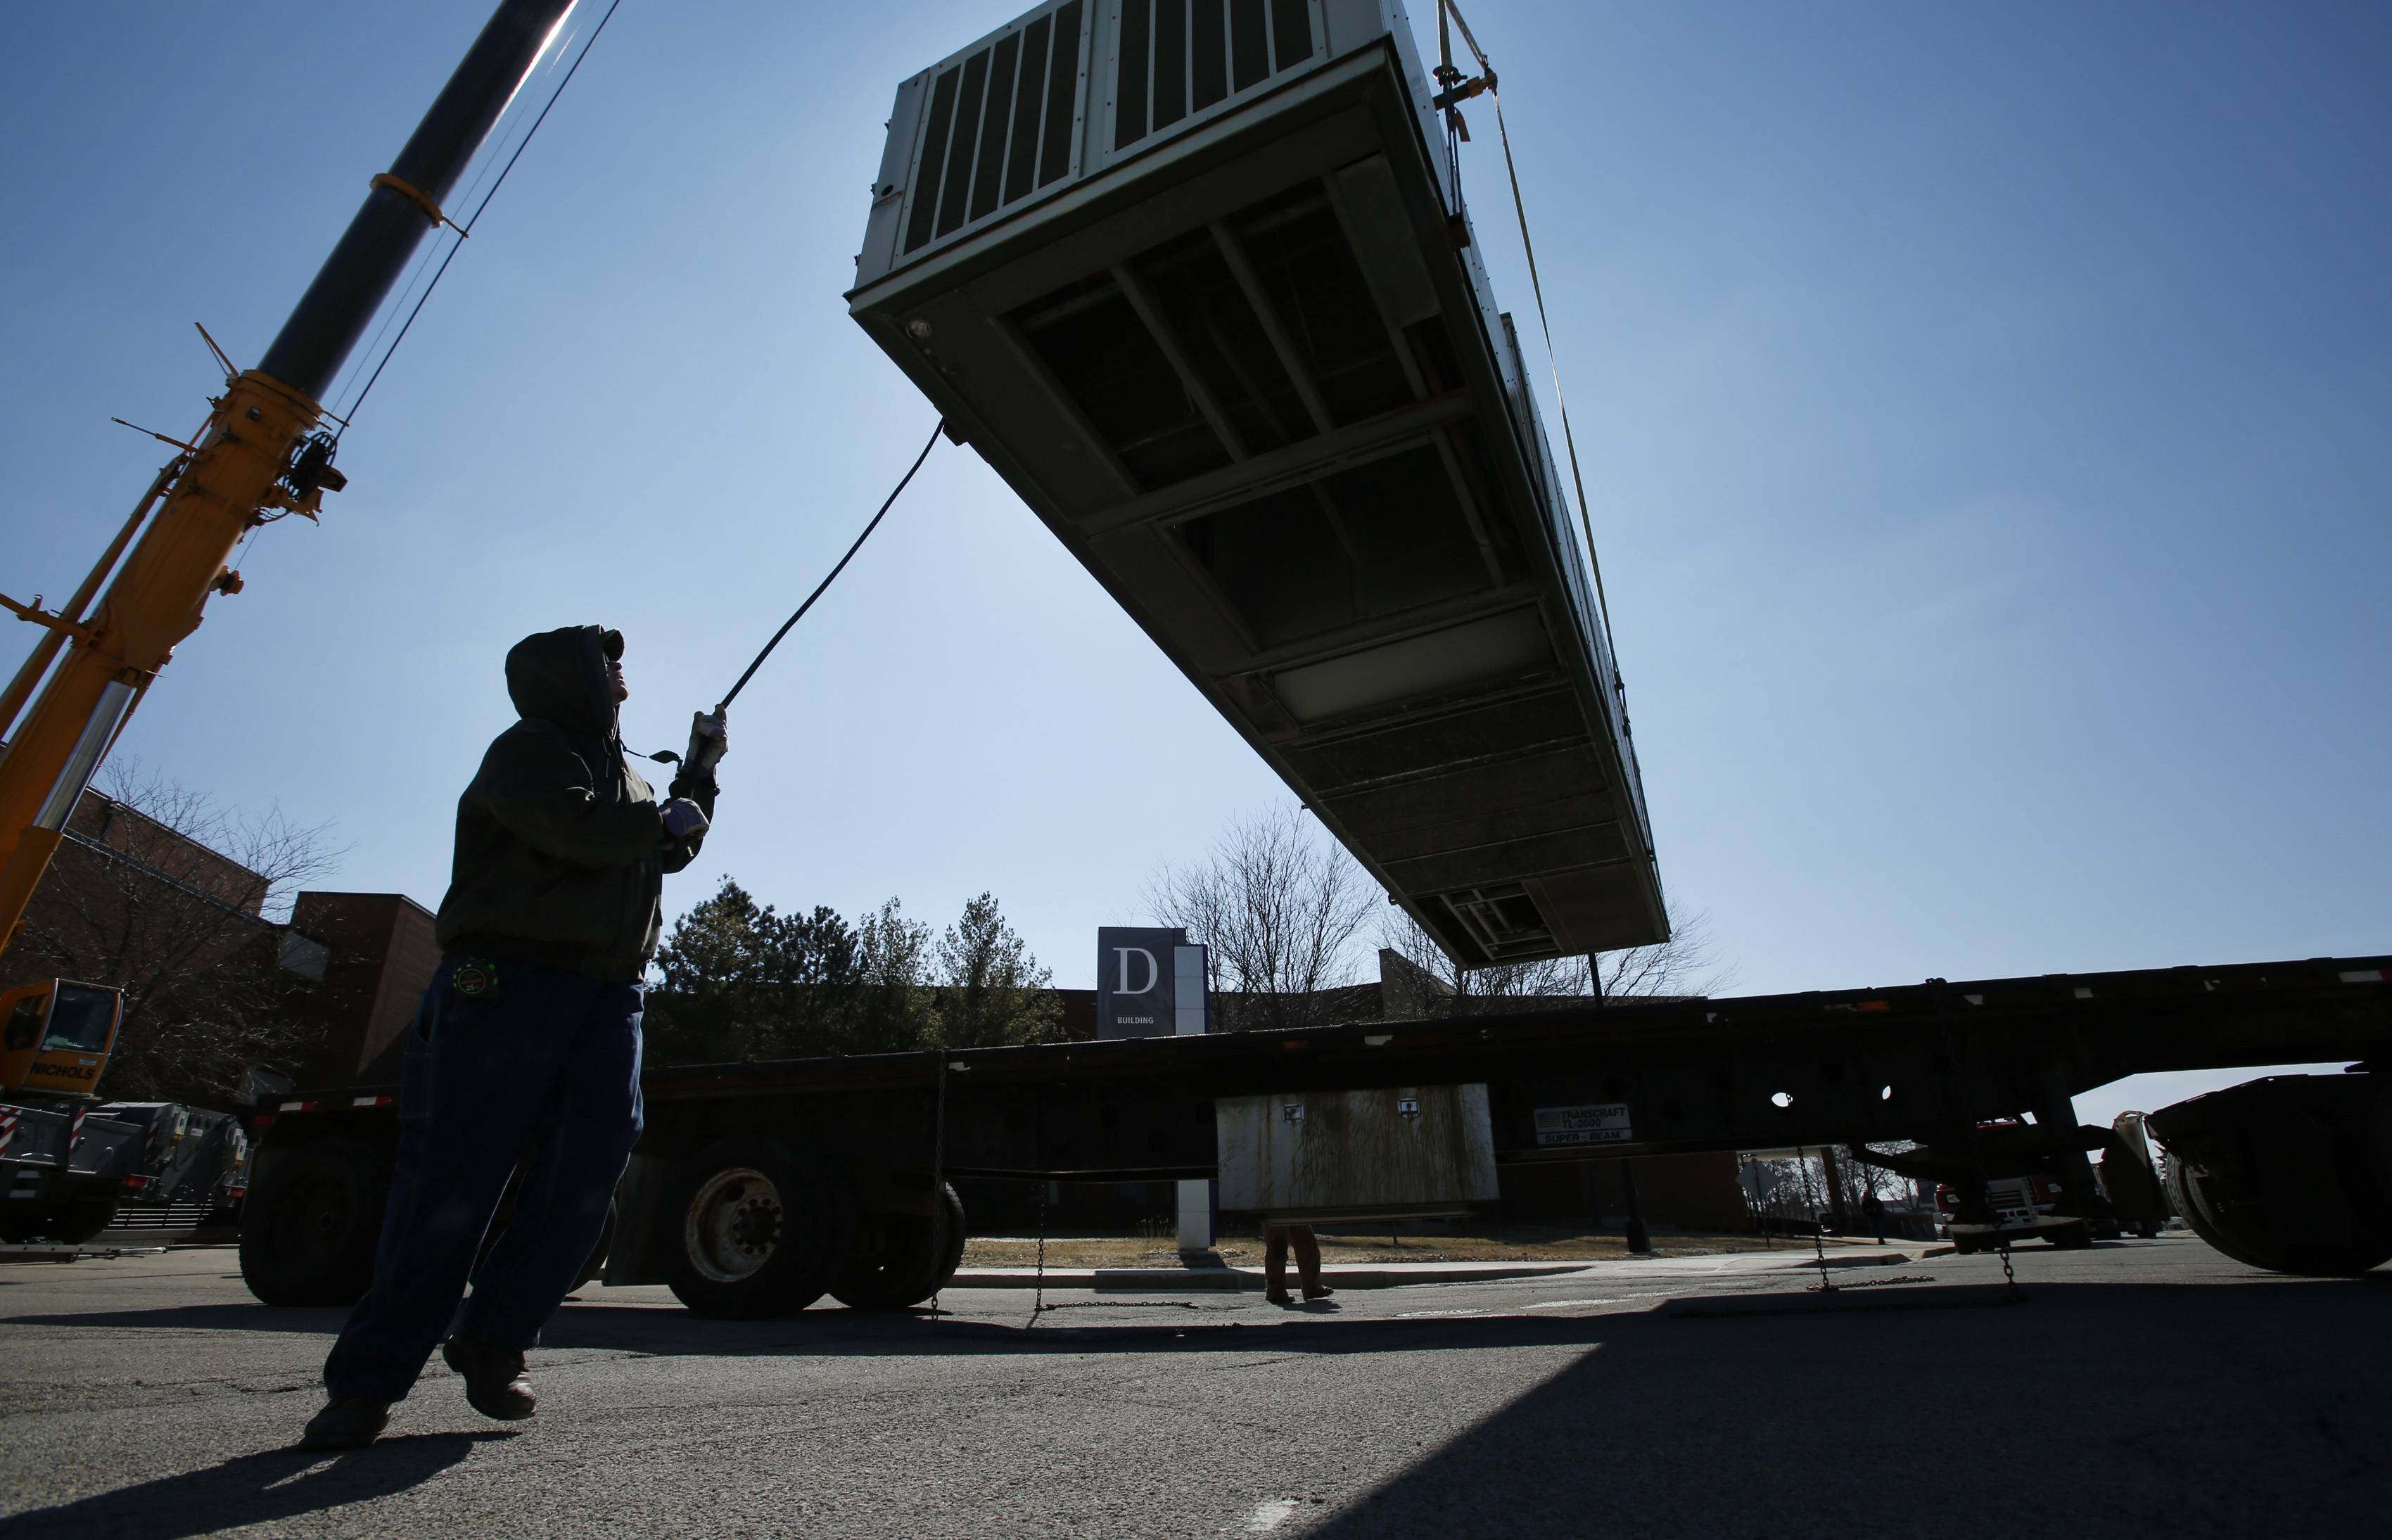 A massive air conditioning unit is positioned by Bill Wroblewski of Romeoville.